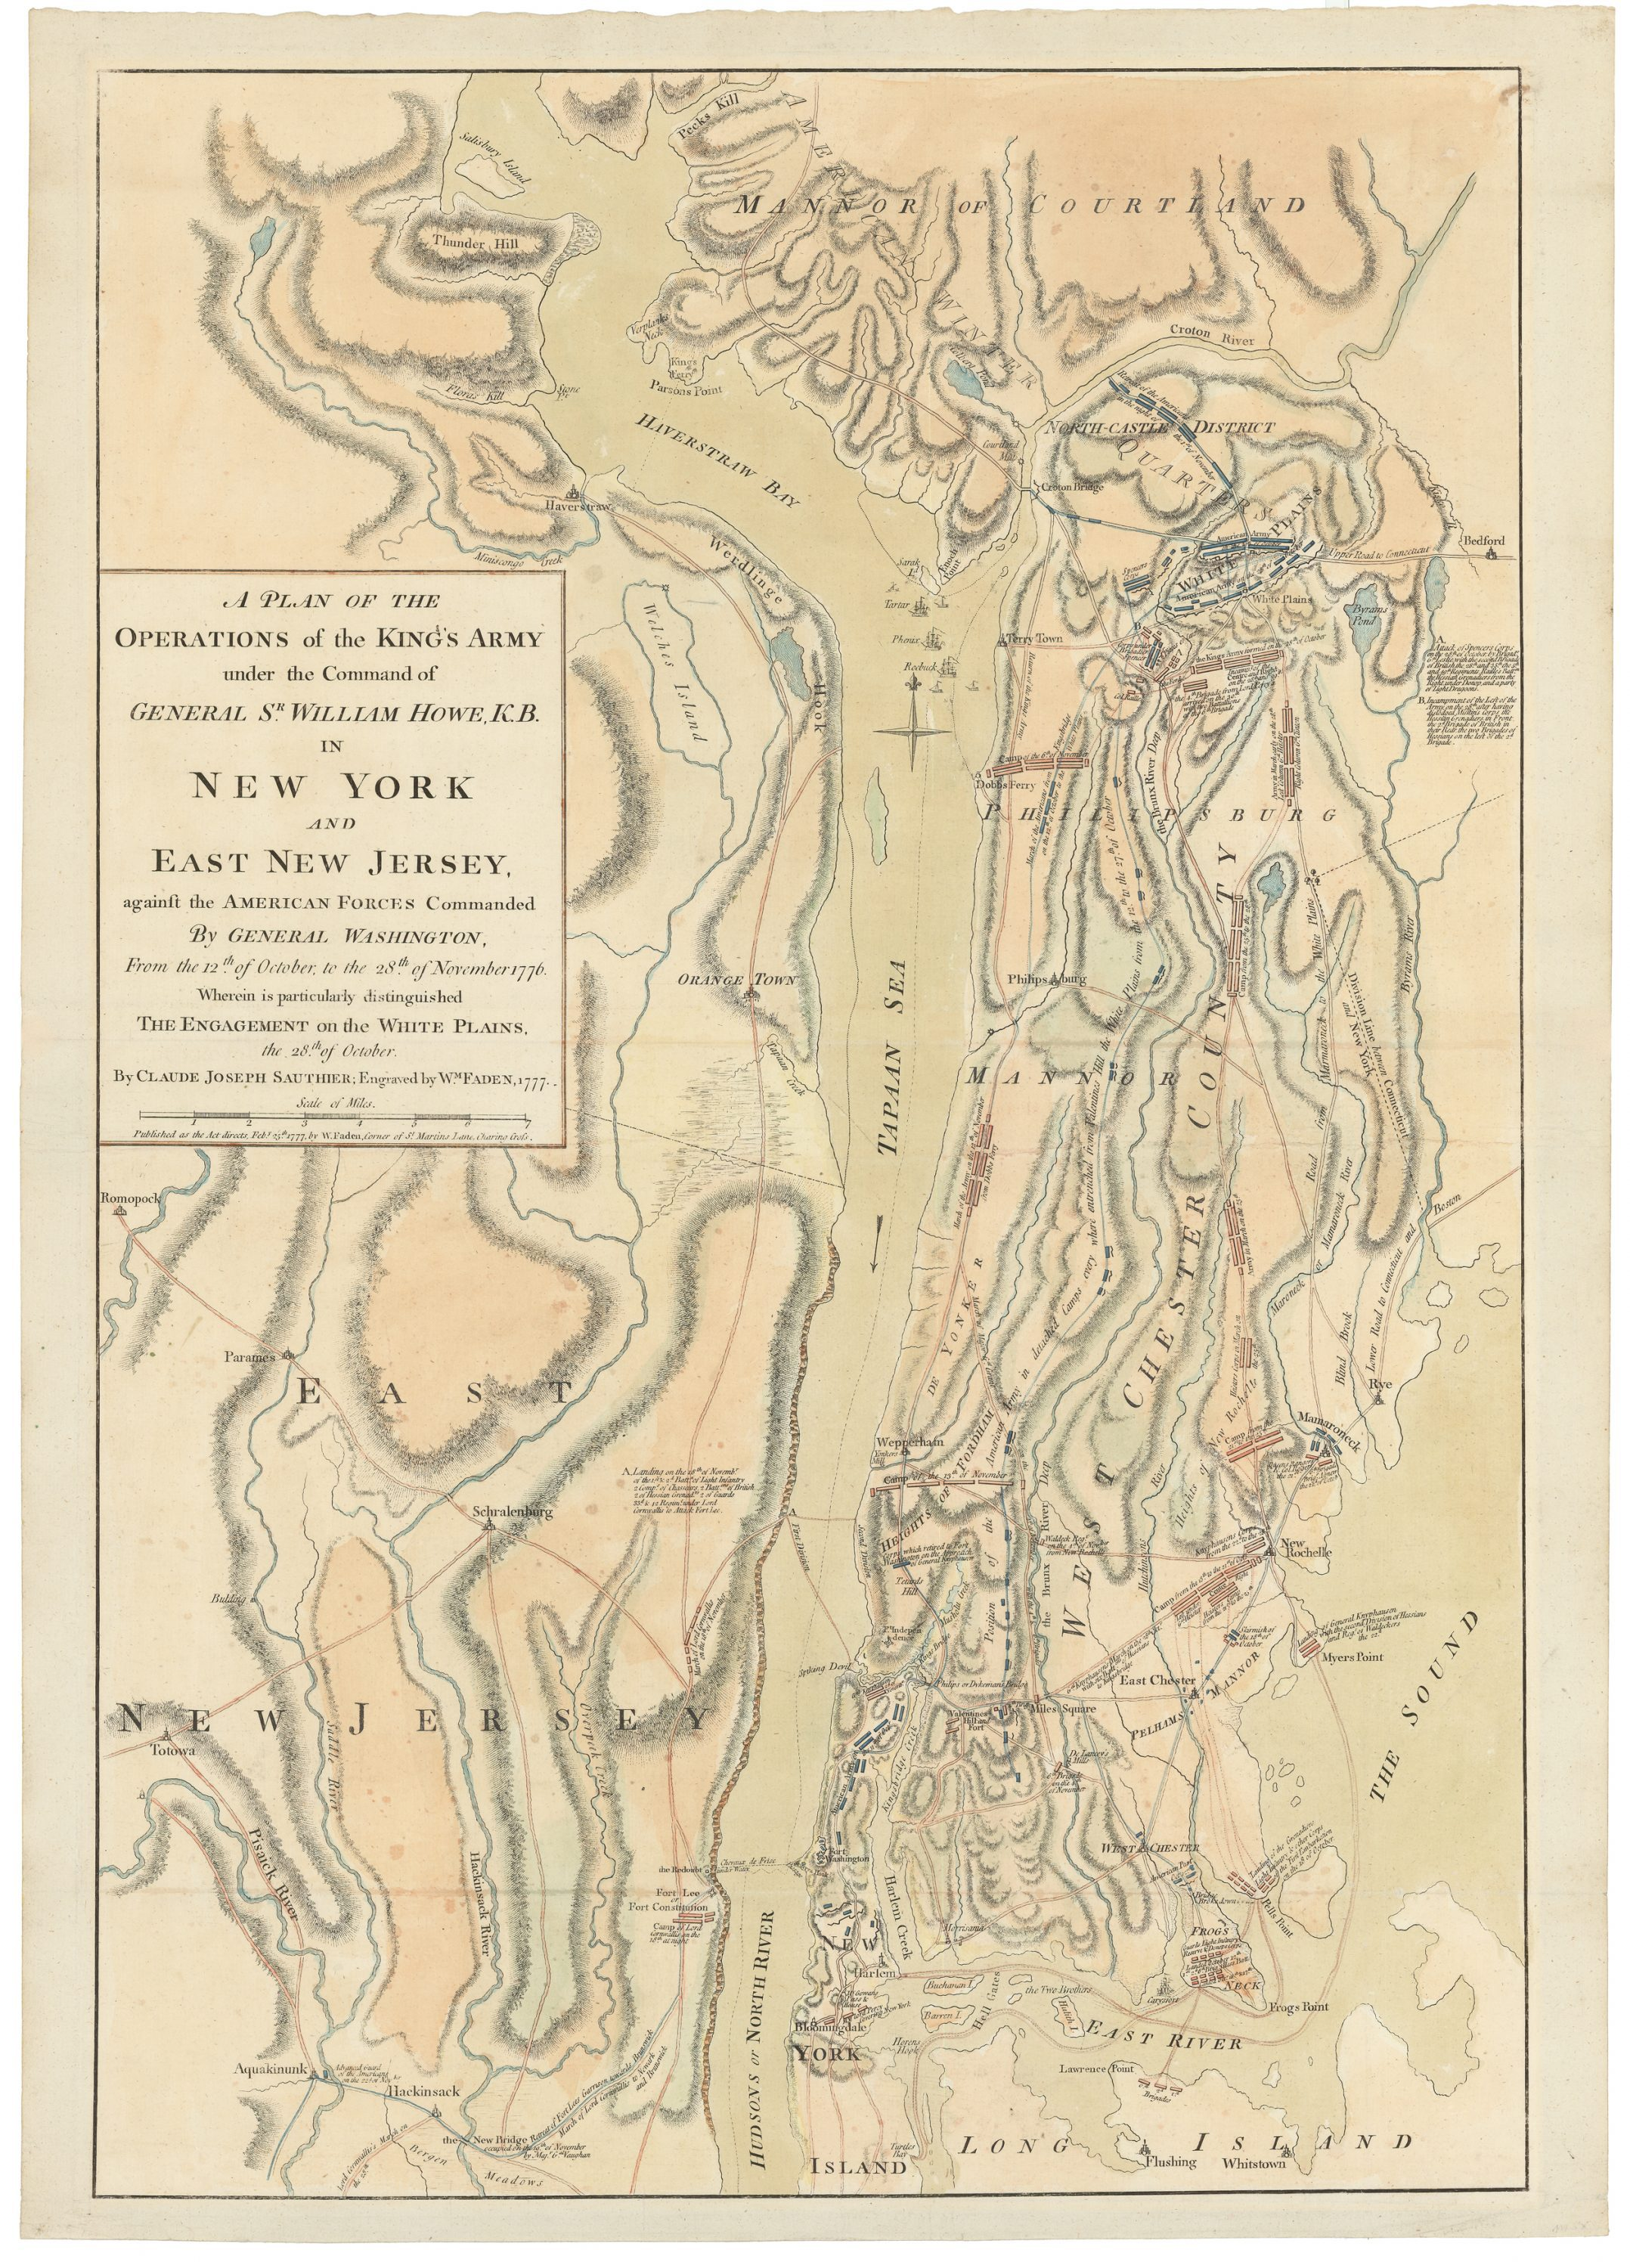 SauthierFaden map of the 1776 New York campaign culminating in the